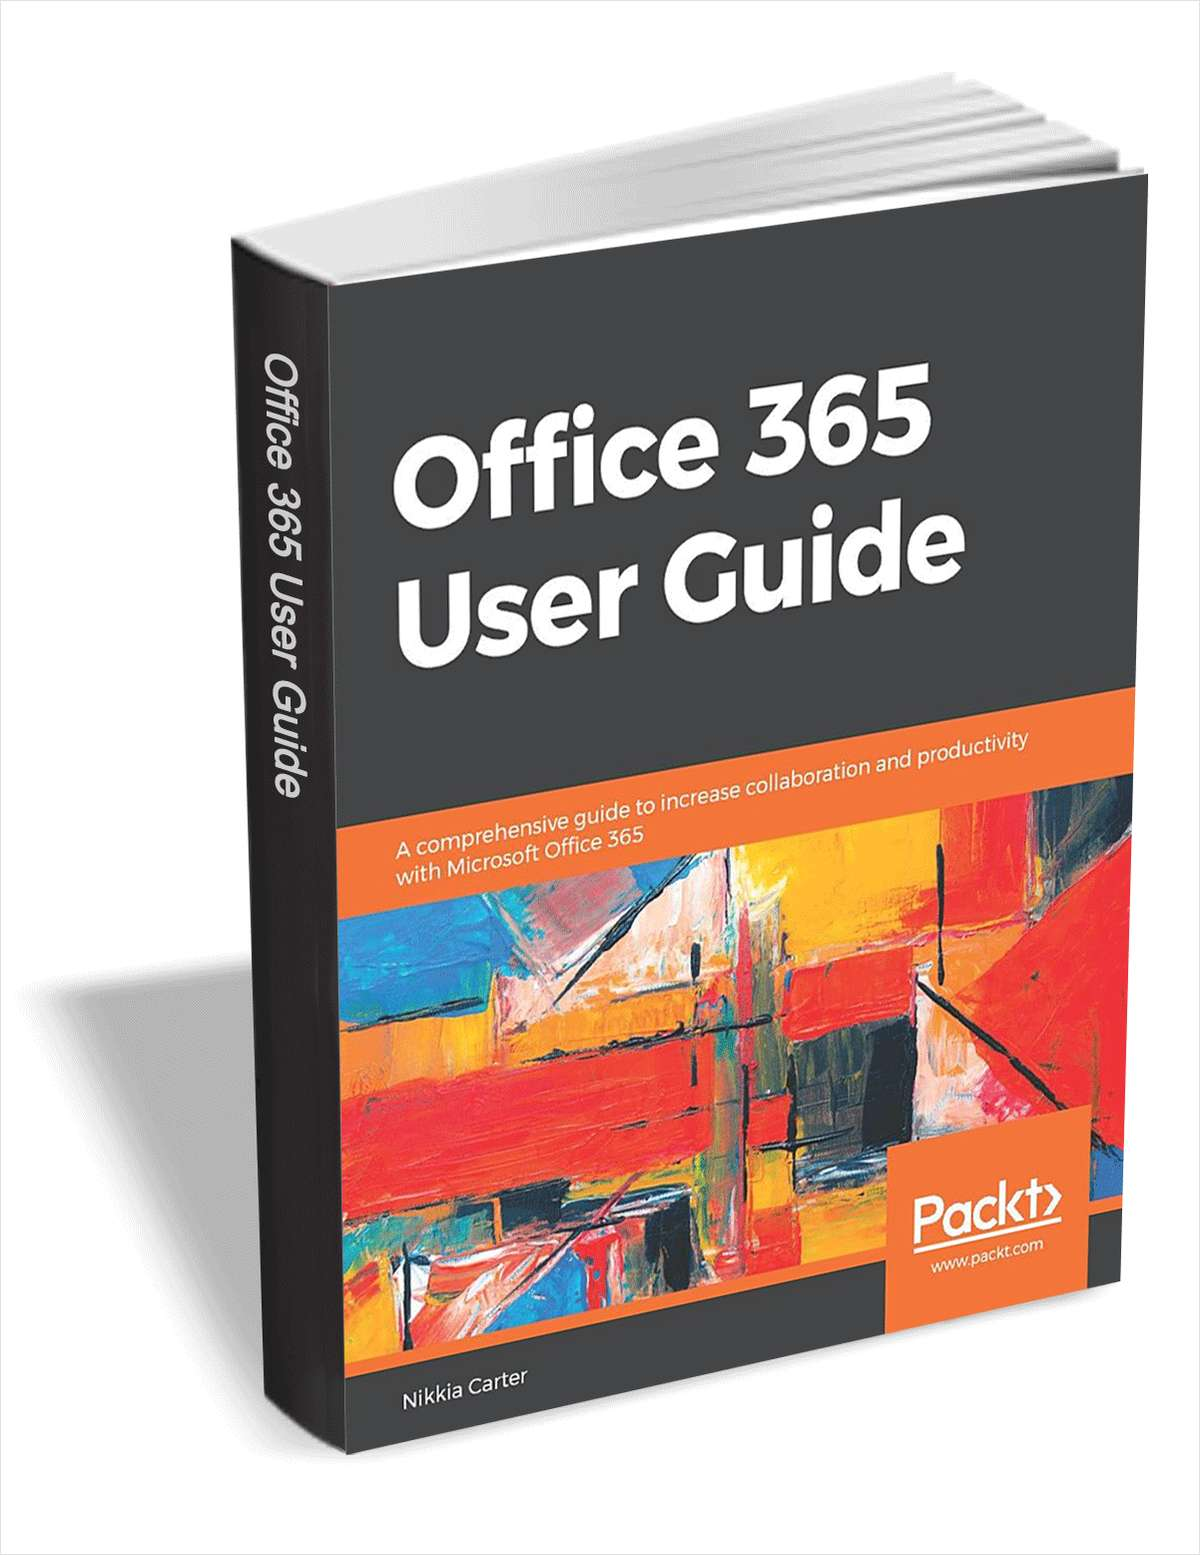 Office 365 User Guide ($23.99 Value) FREE for a Limited Time